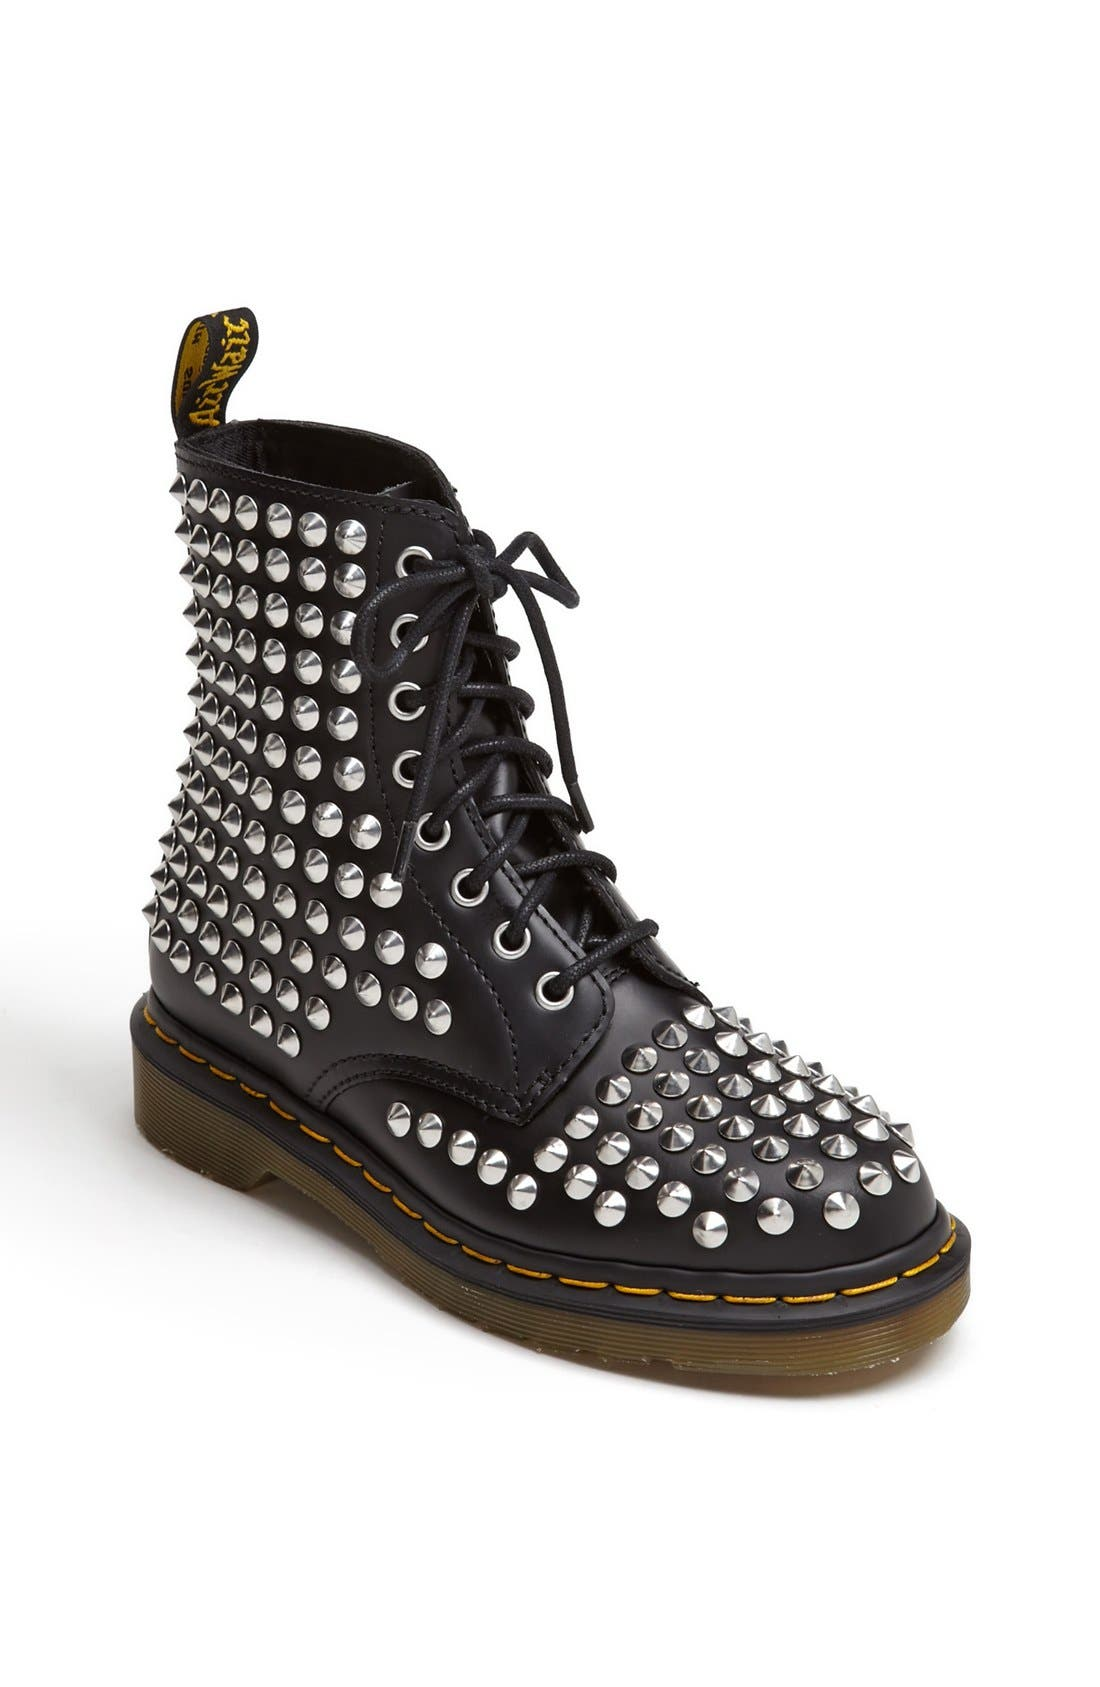 Alternate Image 1 Selected - Dr. Martens 'Spike' Boot